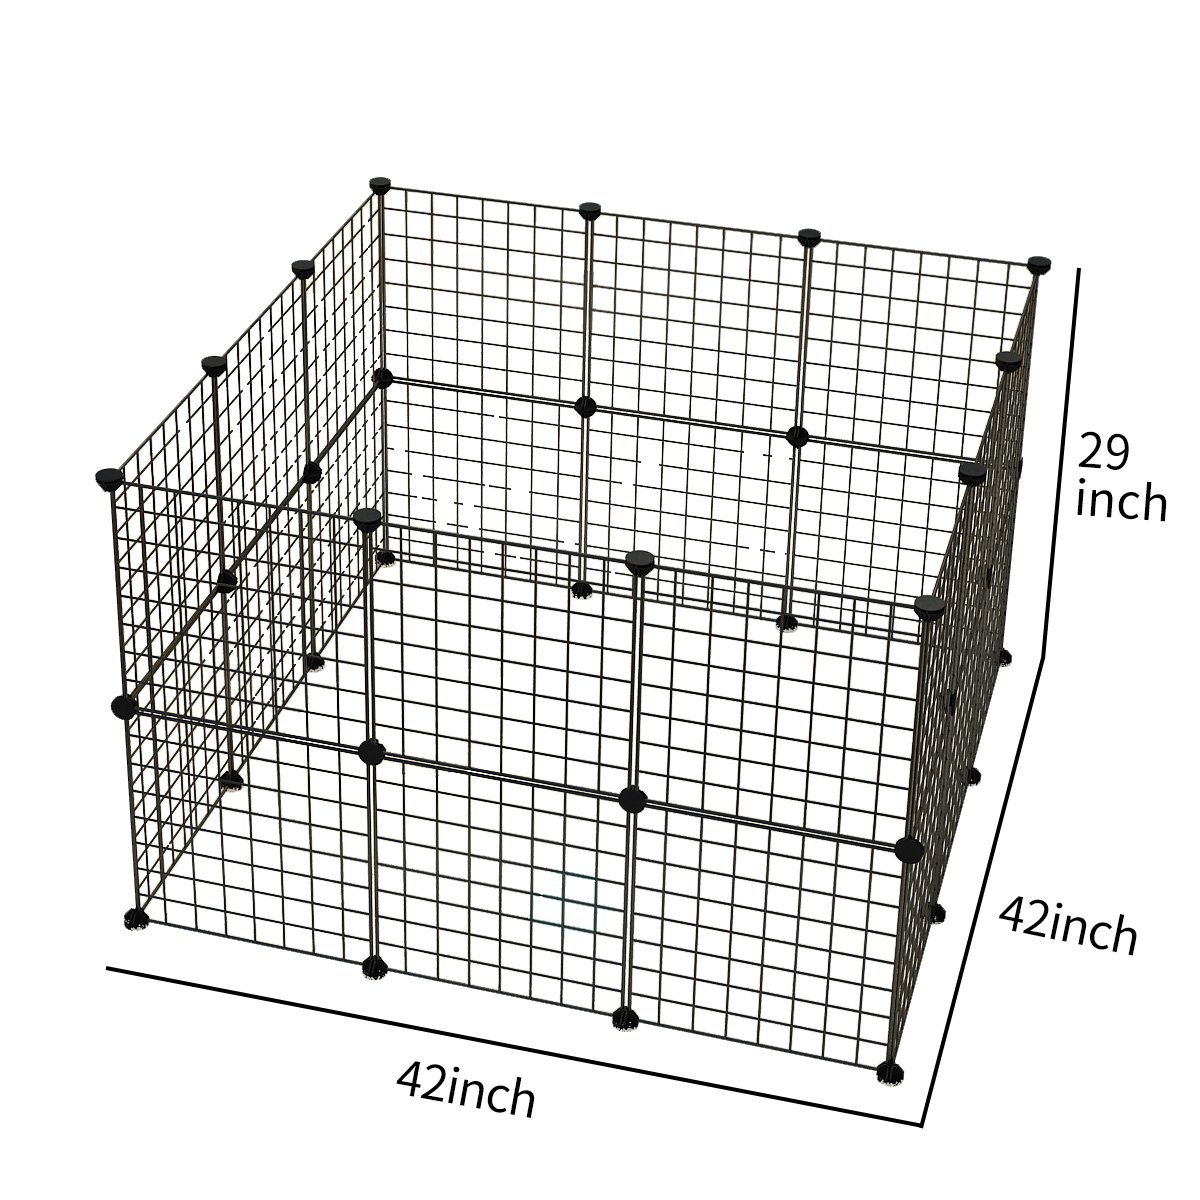 JYYG Pet Playpen, Small Animal Cage Indoor Portable Metal Wire Yard Fence for Small Animals, Guinea Pigs, Rabbits Kennel Crate Fence Tent, Black,24 Panels by JYYG (Image #2)